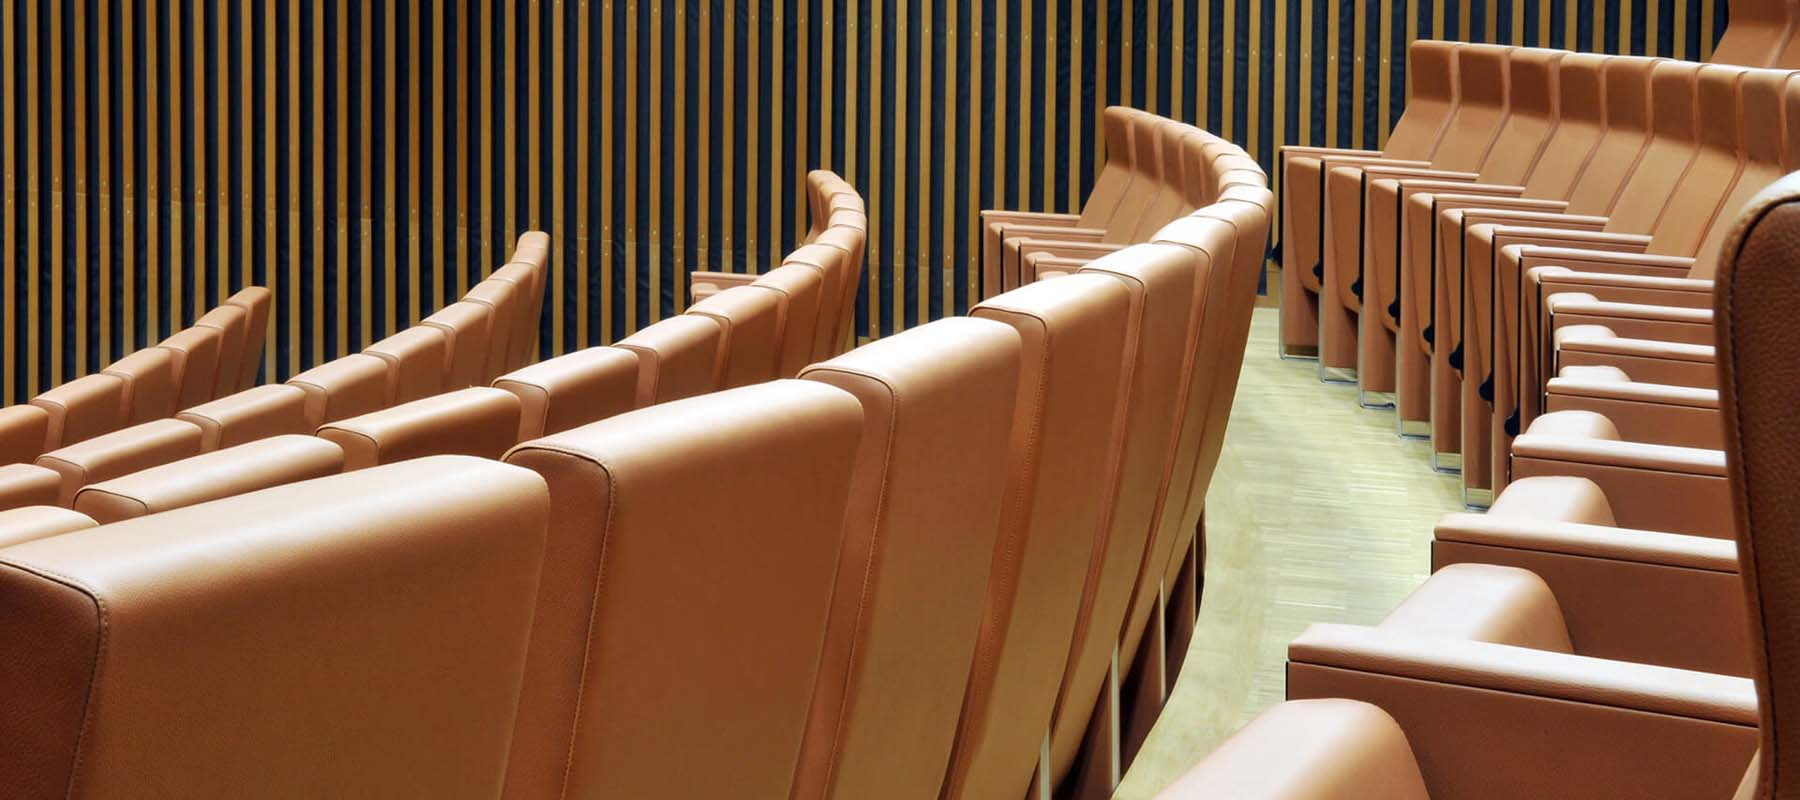 LAMM Conference & Auditorium Seating | Woodwood Group